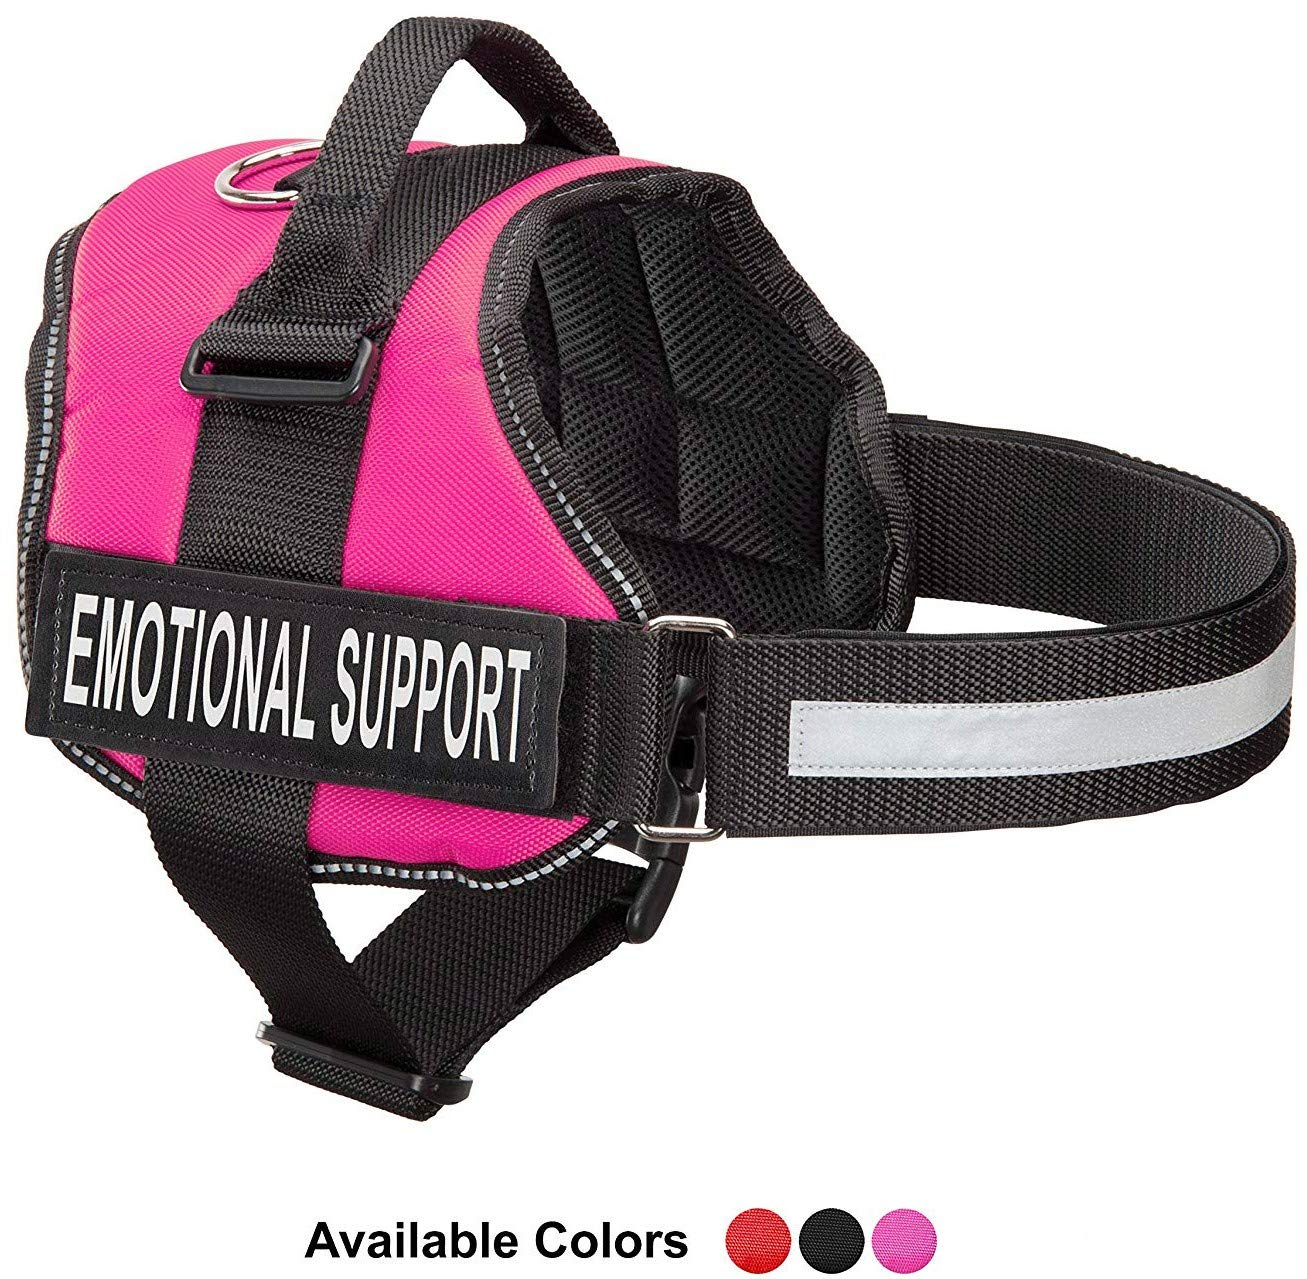 Hot Pink XS, Fits Girth 18-22.5\ Hot Pink XS, Fits Girth 18-22.5\ Emotional Support Dog Harness with Reflective Straps, Interchangeable Patches, Top Mount Handle   7 Adjustable Sizes   Heavy Duty Construction